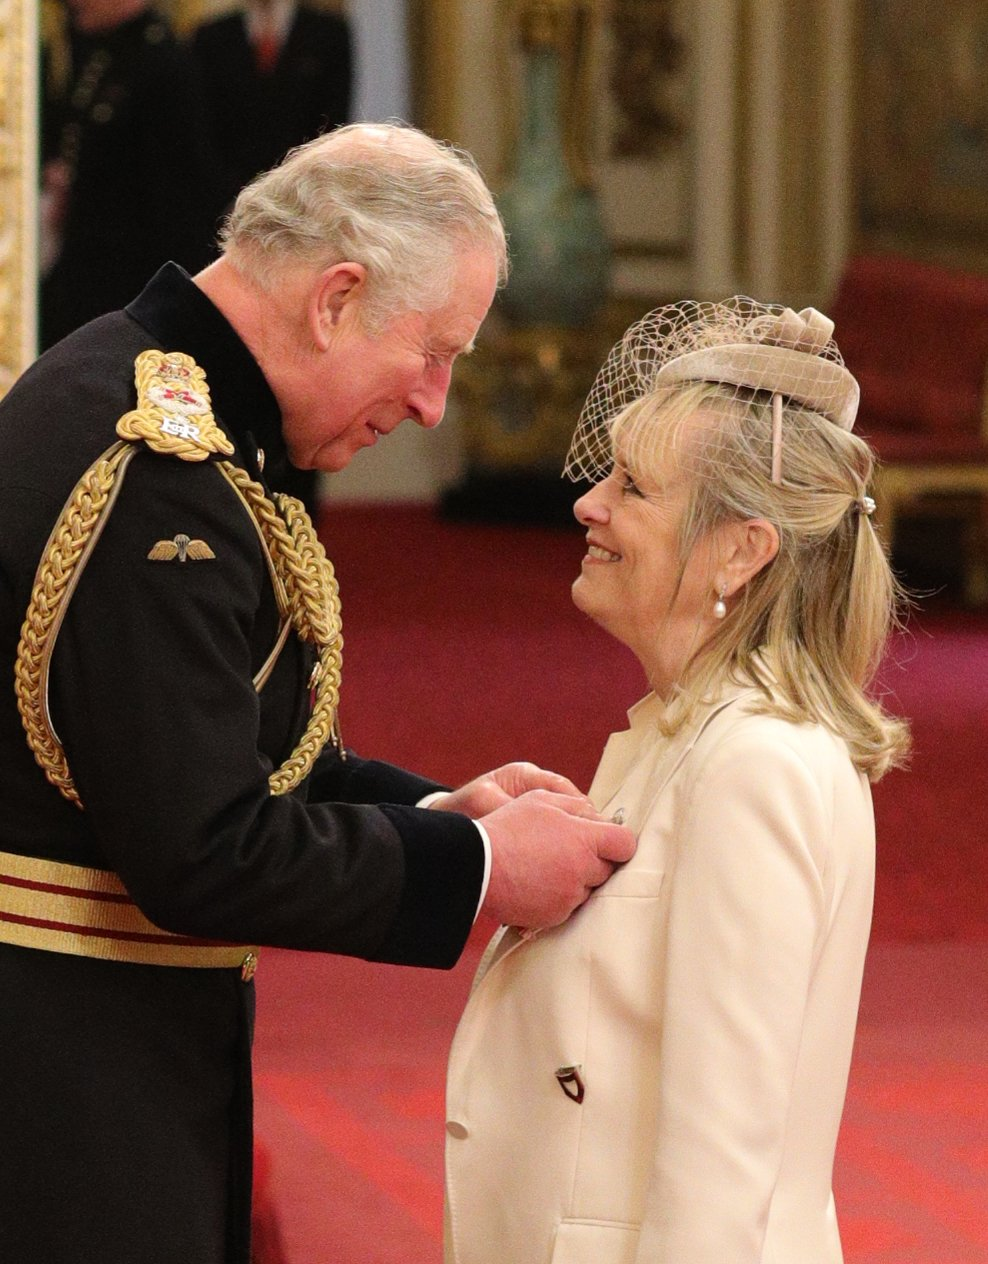 Lesley Lawson – @Twiggy - was awarded a Damehood by The Prince of Wales.  Model, Designer, Singer and Actress, Twiggy received her Honour for services to Fashion, to the Arts and to charity. https://t.co/rEMs8qk3NT